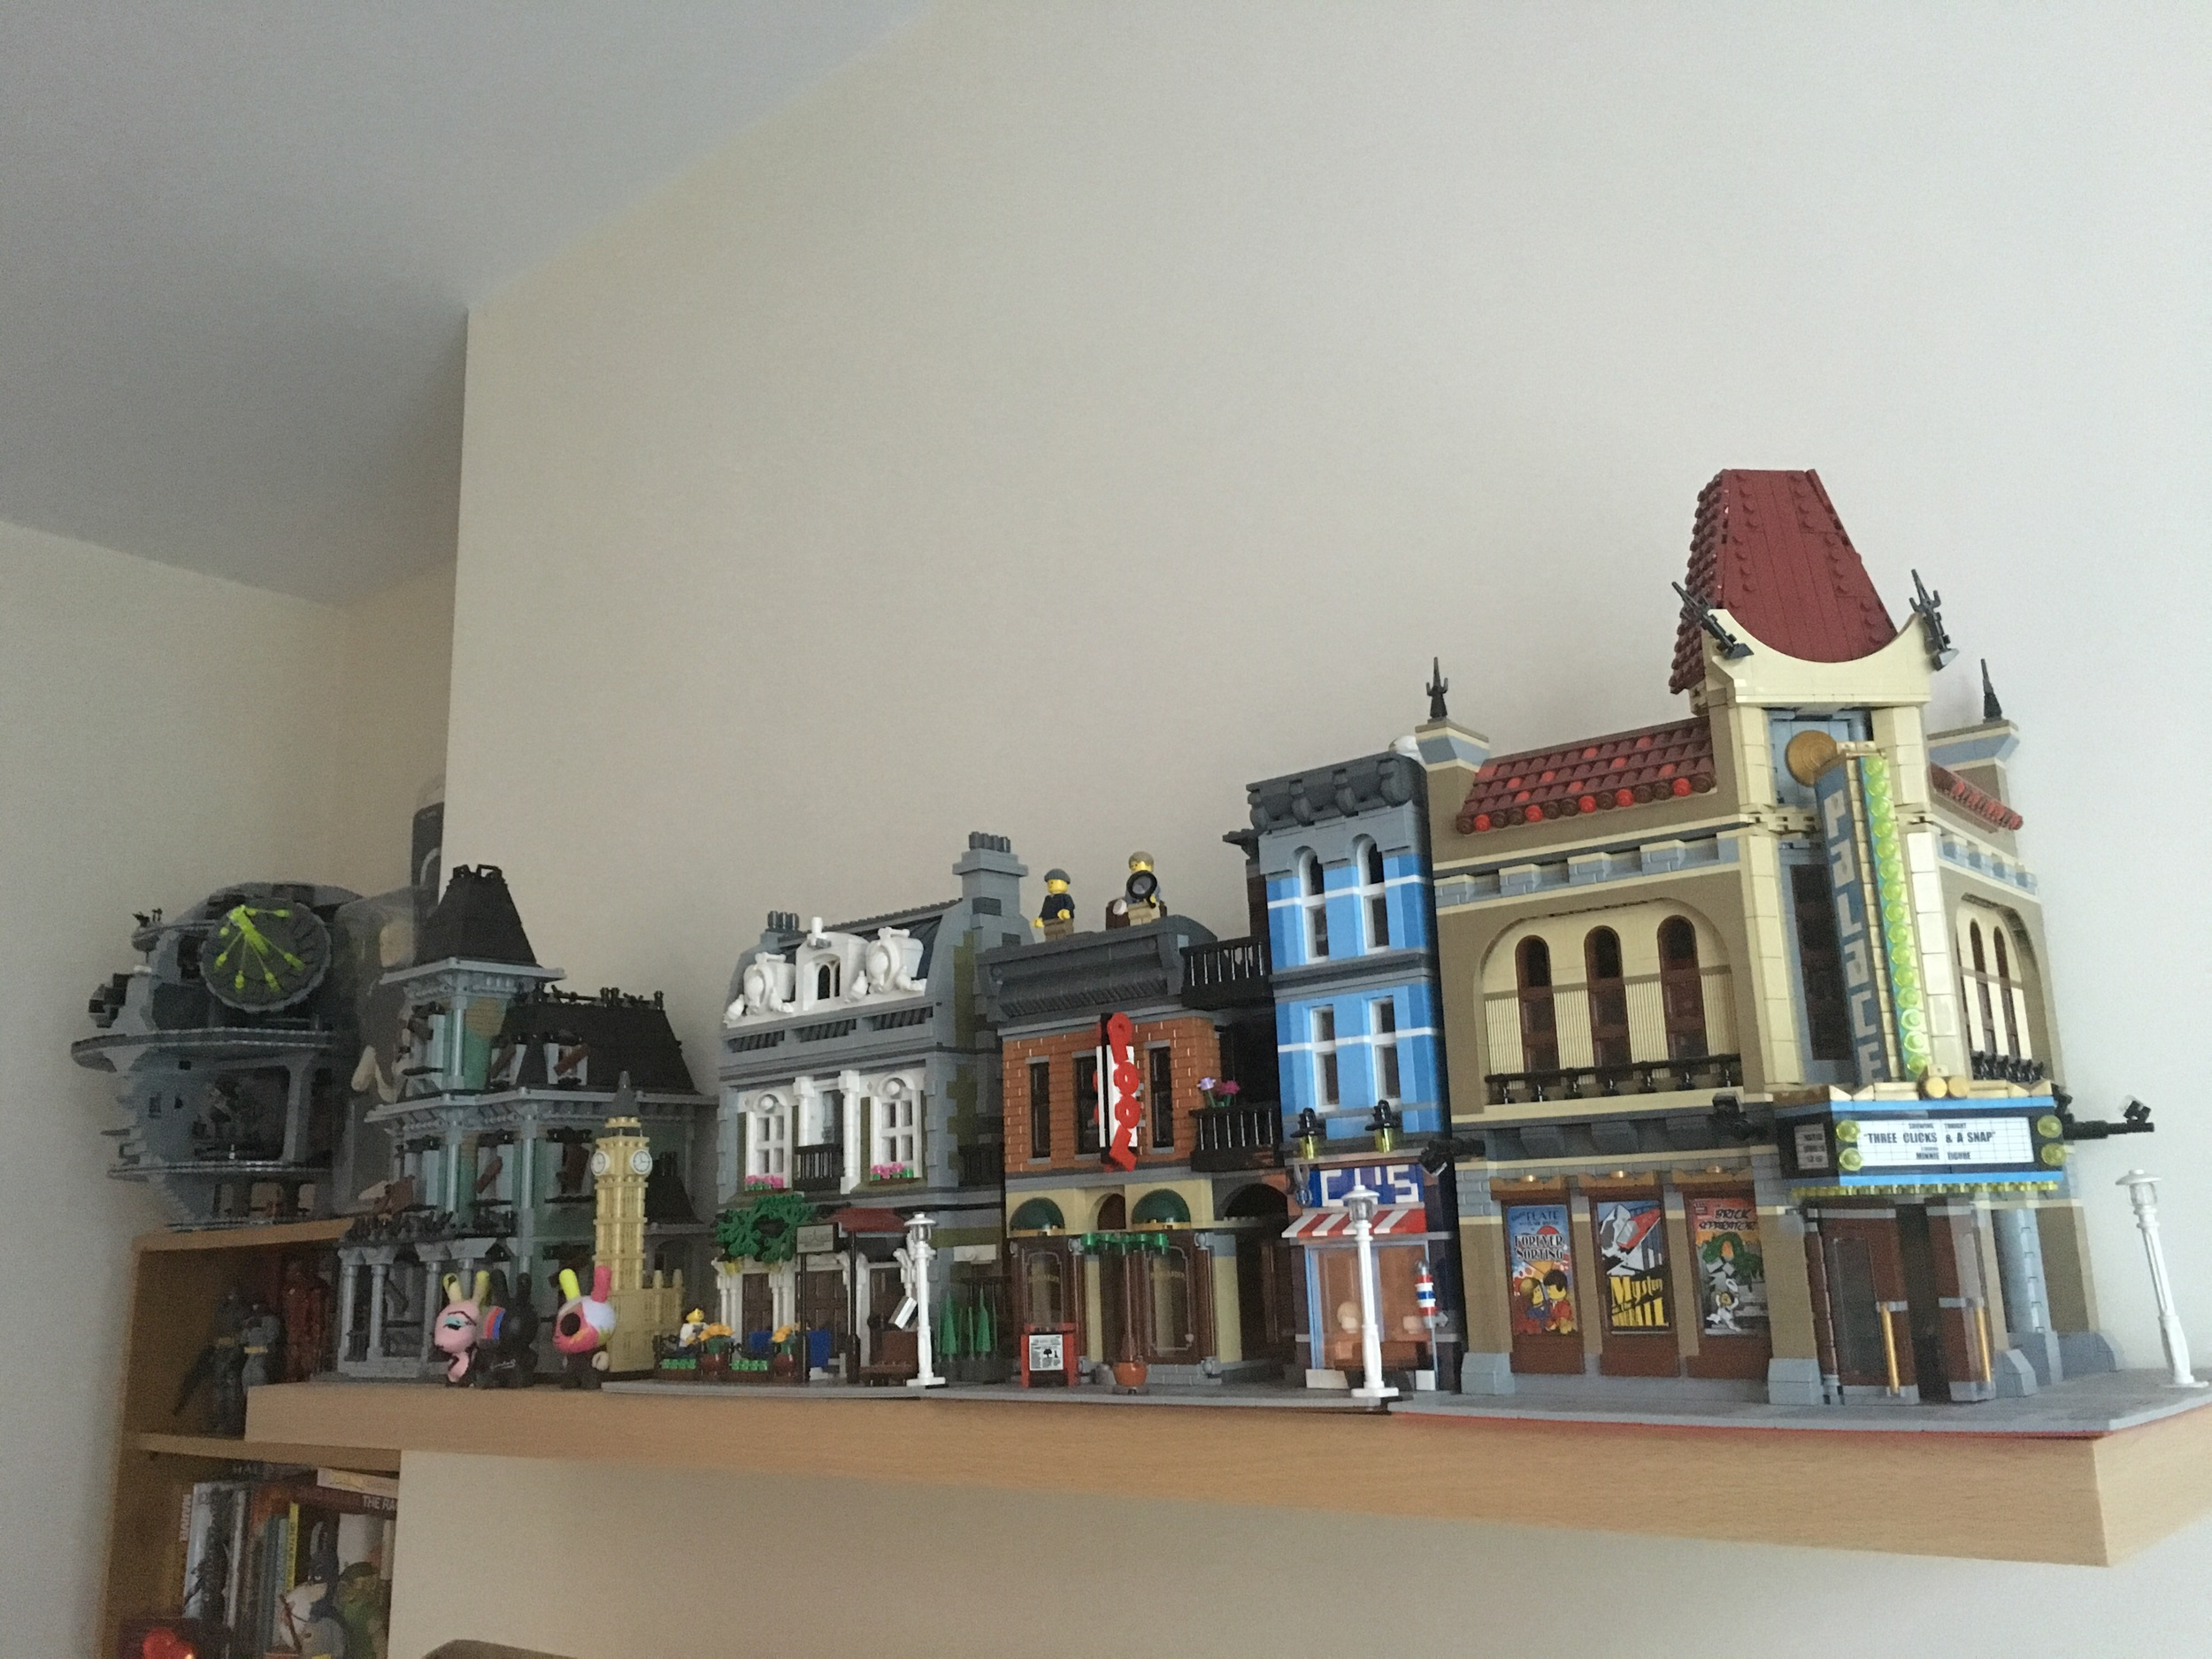 My Lego display above the TV which I have changed this week